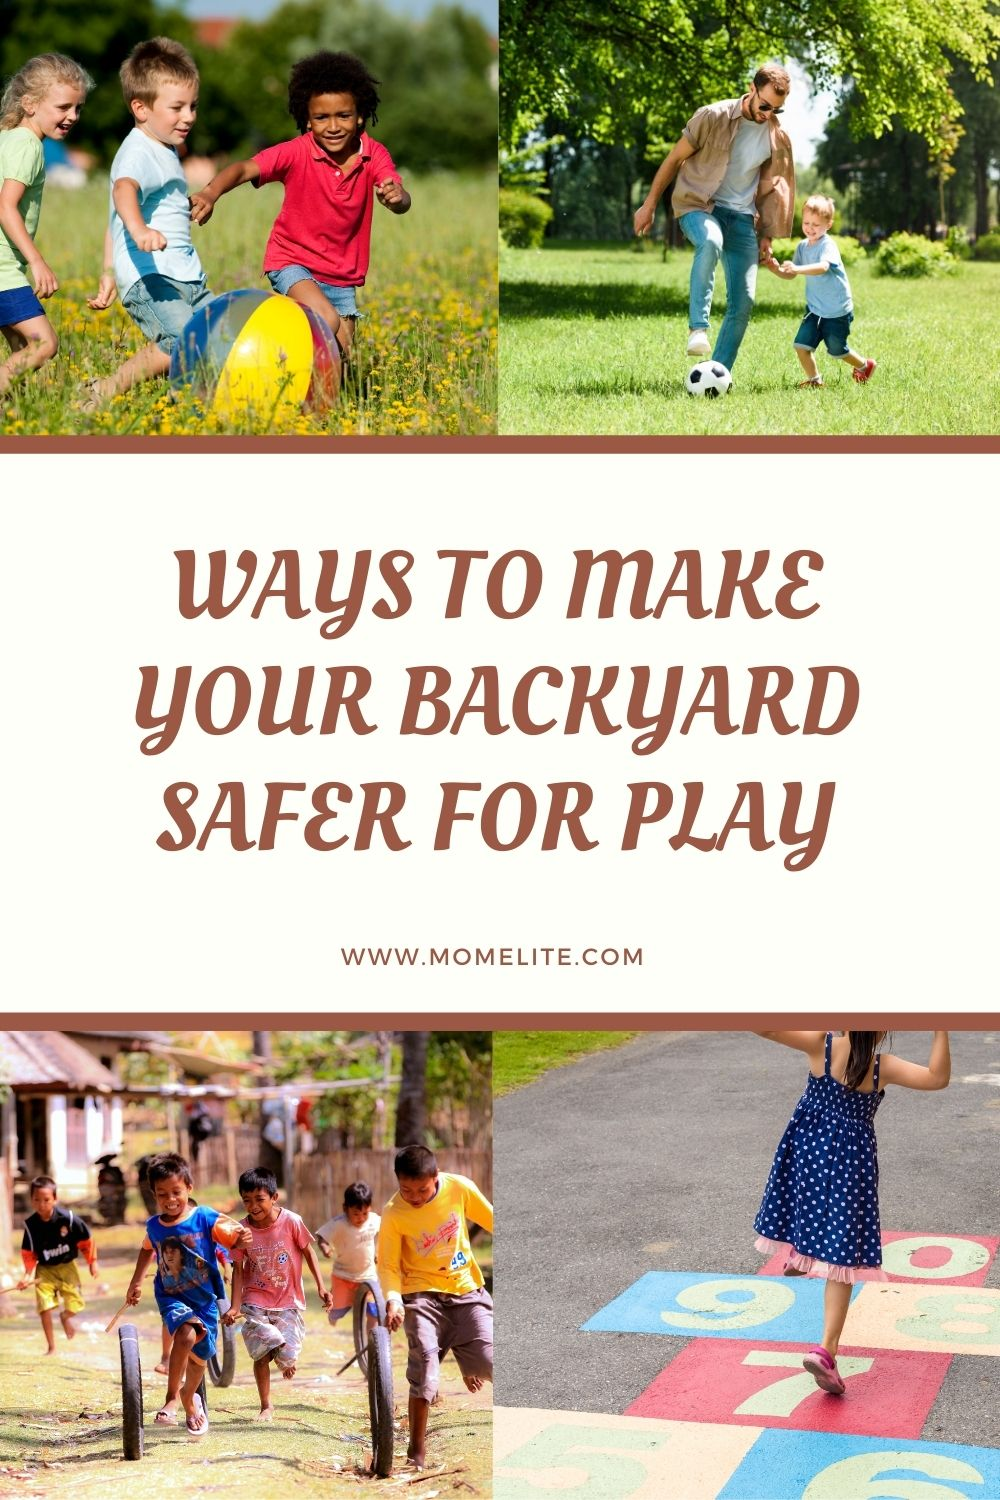 WAYS TO MAKE YOUR BACKYARD SAFER FOR PLAY